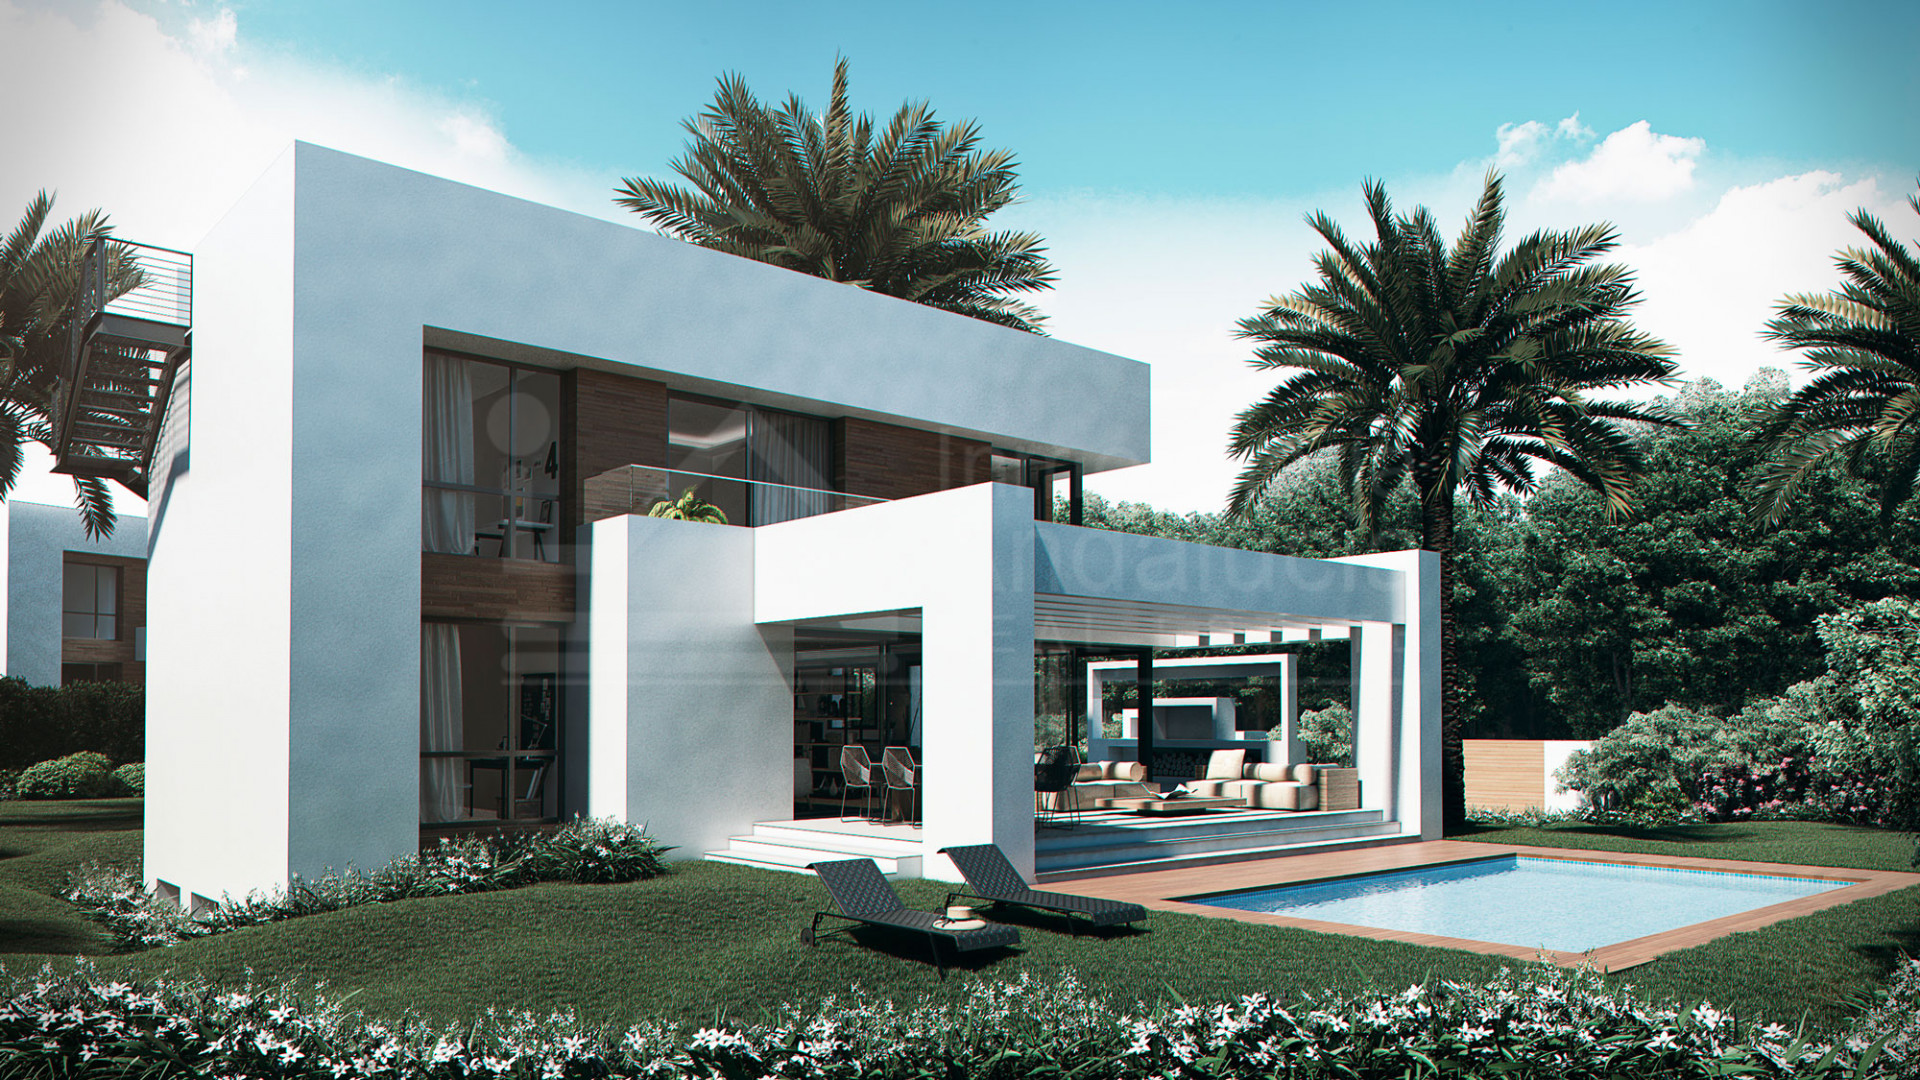 Immaculate and truly unique contemporary 4-bedroom villa for sale in El Paraiso, Estepona